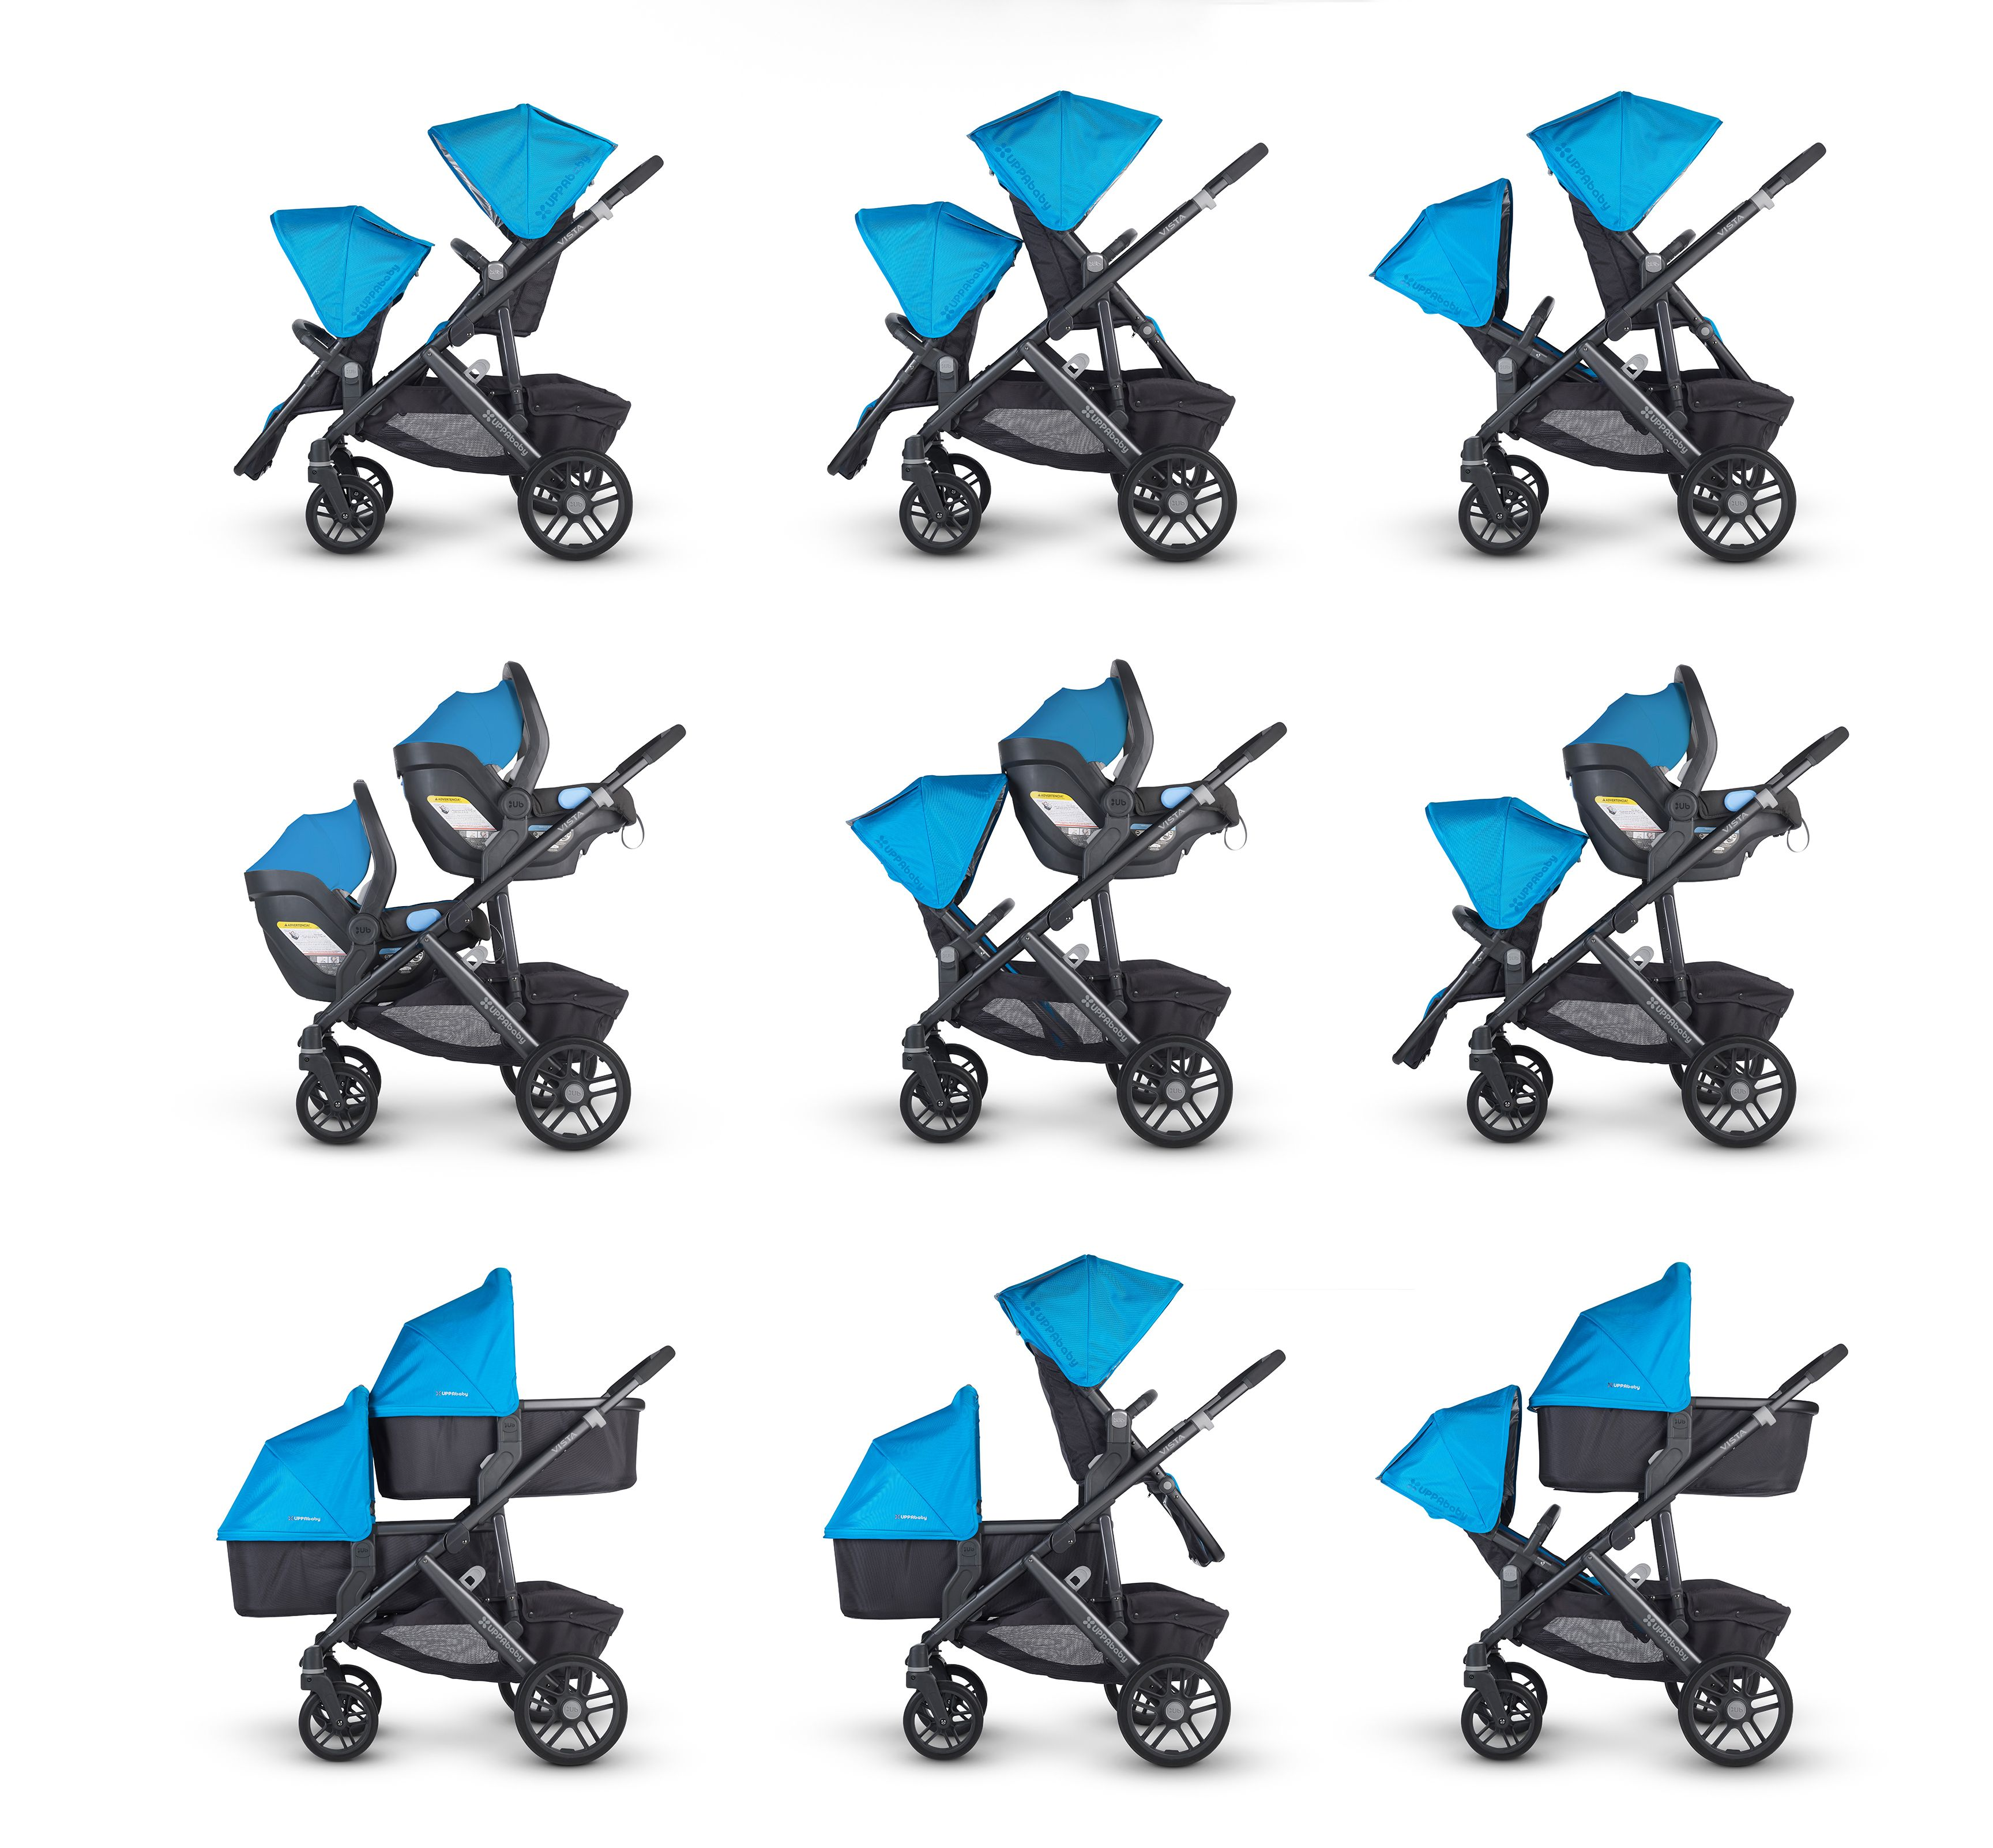 Look At All The Possibilities Of The 2015 Uppababy Vista Now A